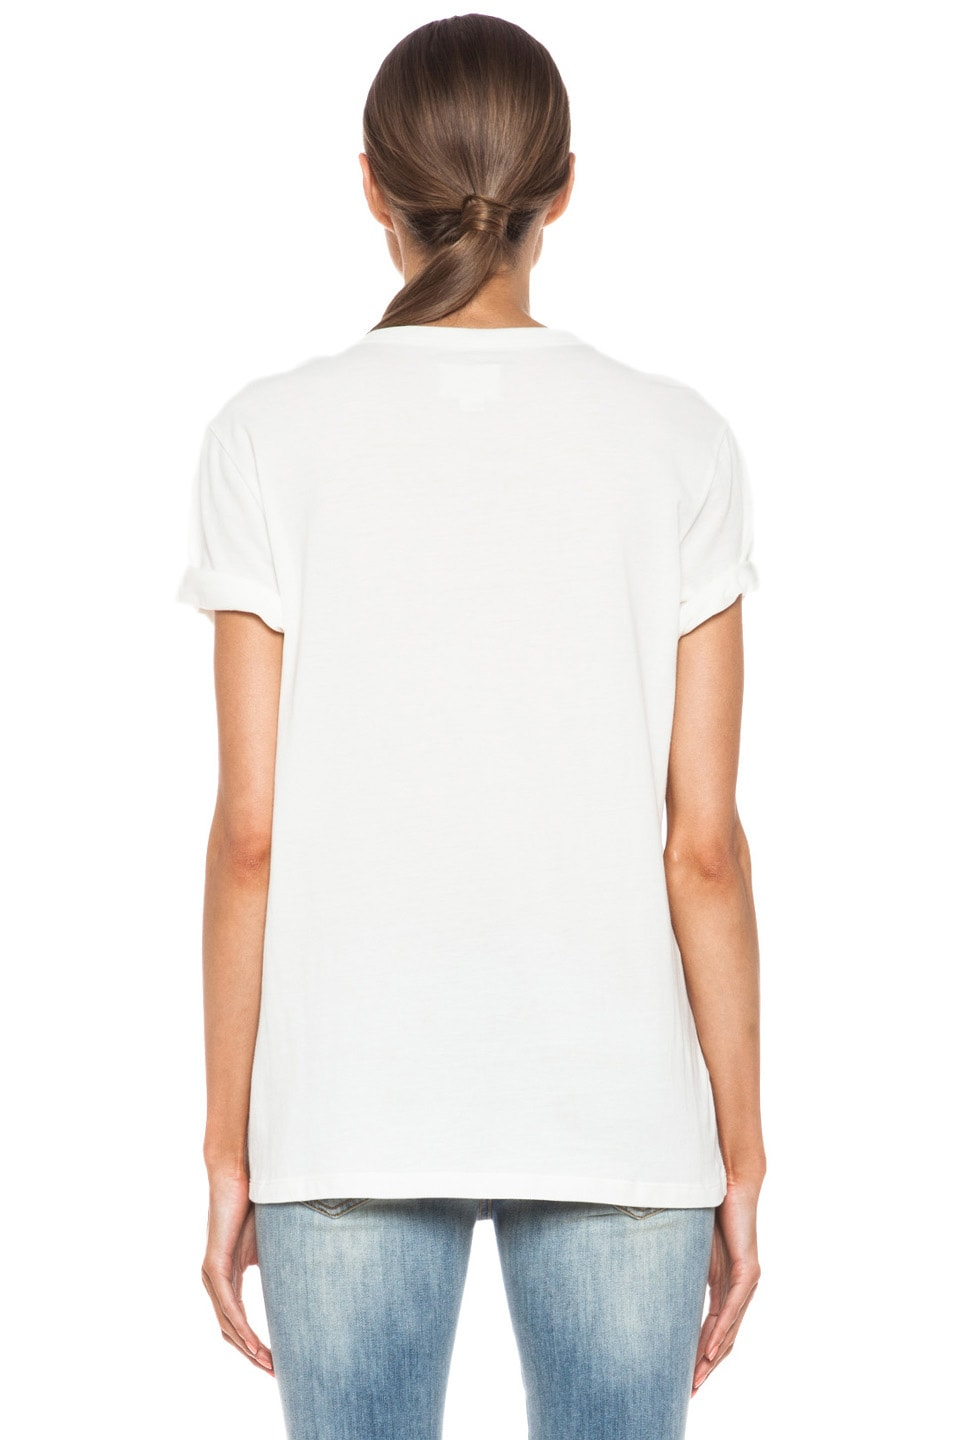 4f688d9dfd5 Image 4 of Band of Outsiders Chateau Marmont Cotton Tee in White